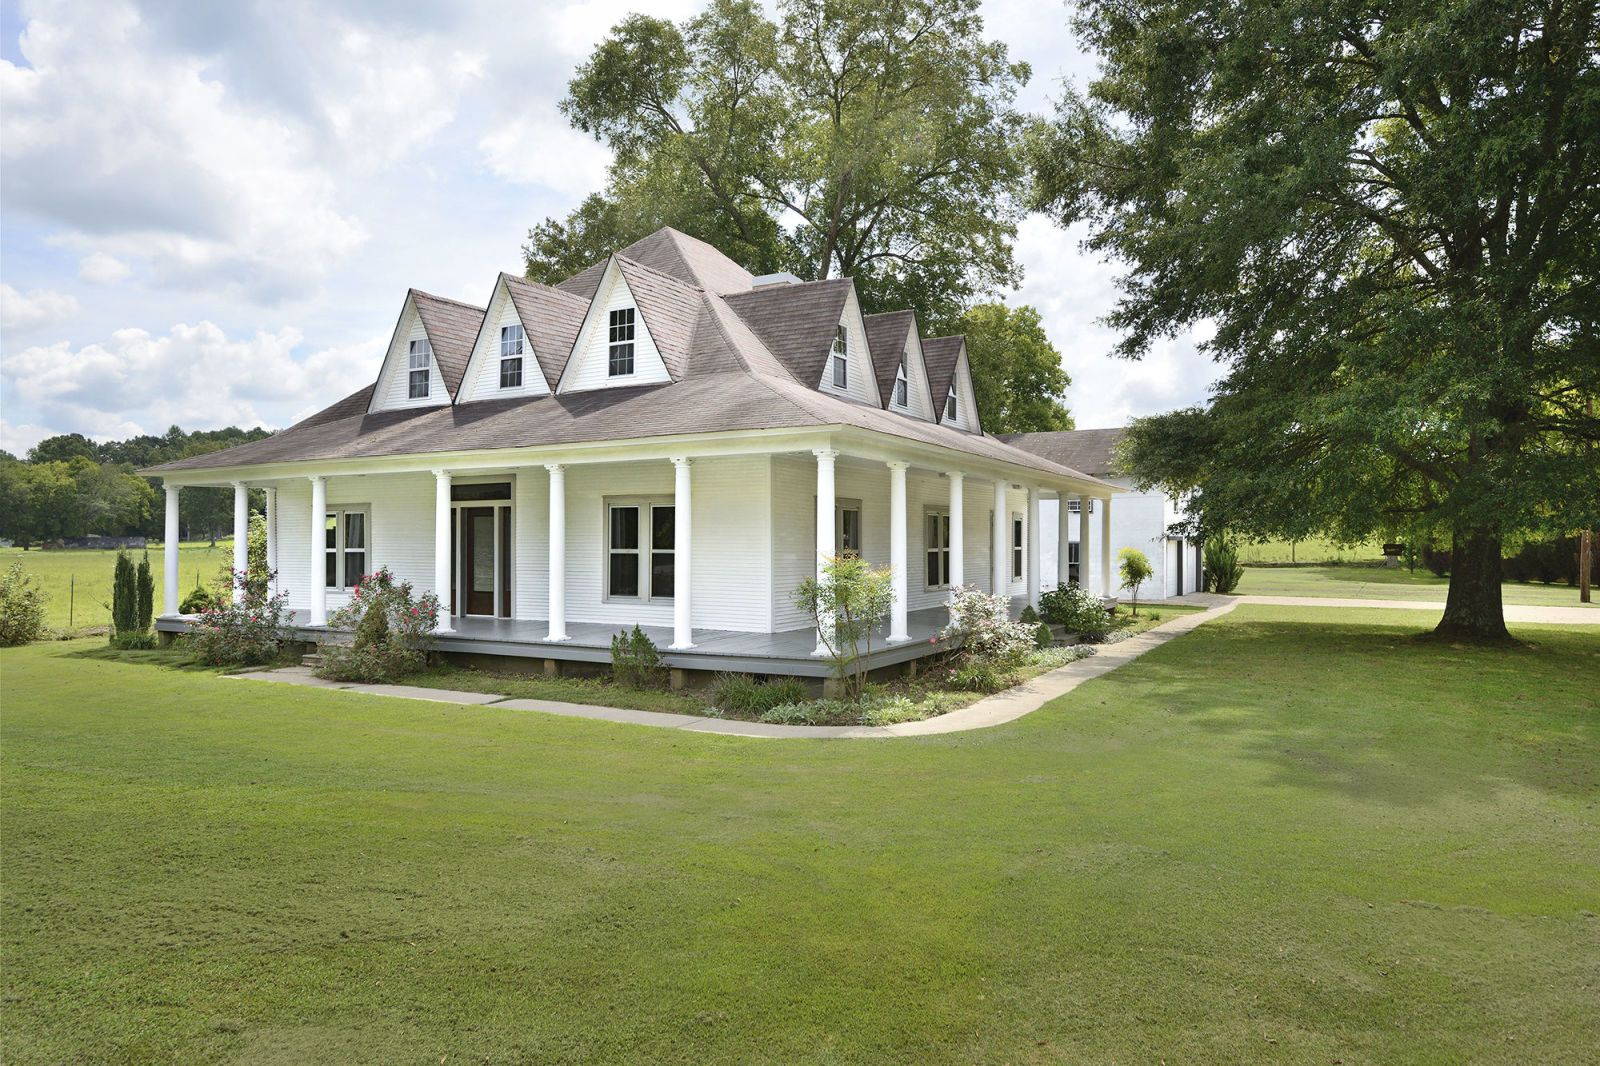 50 Historic Homes For Sale In Every State Across America Historic Homes For Sale Historic Homes Country Homes For Sale